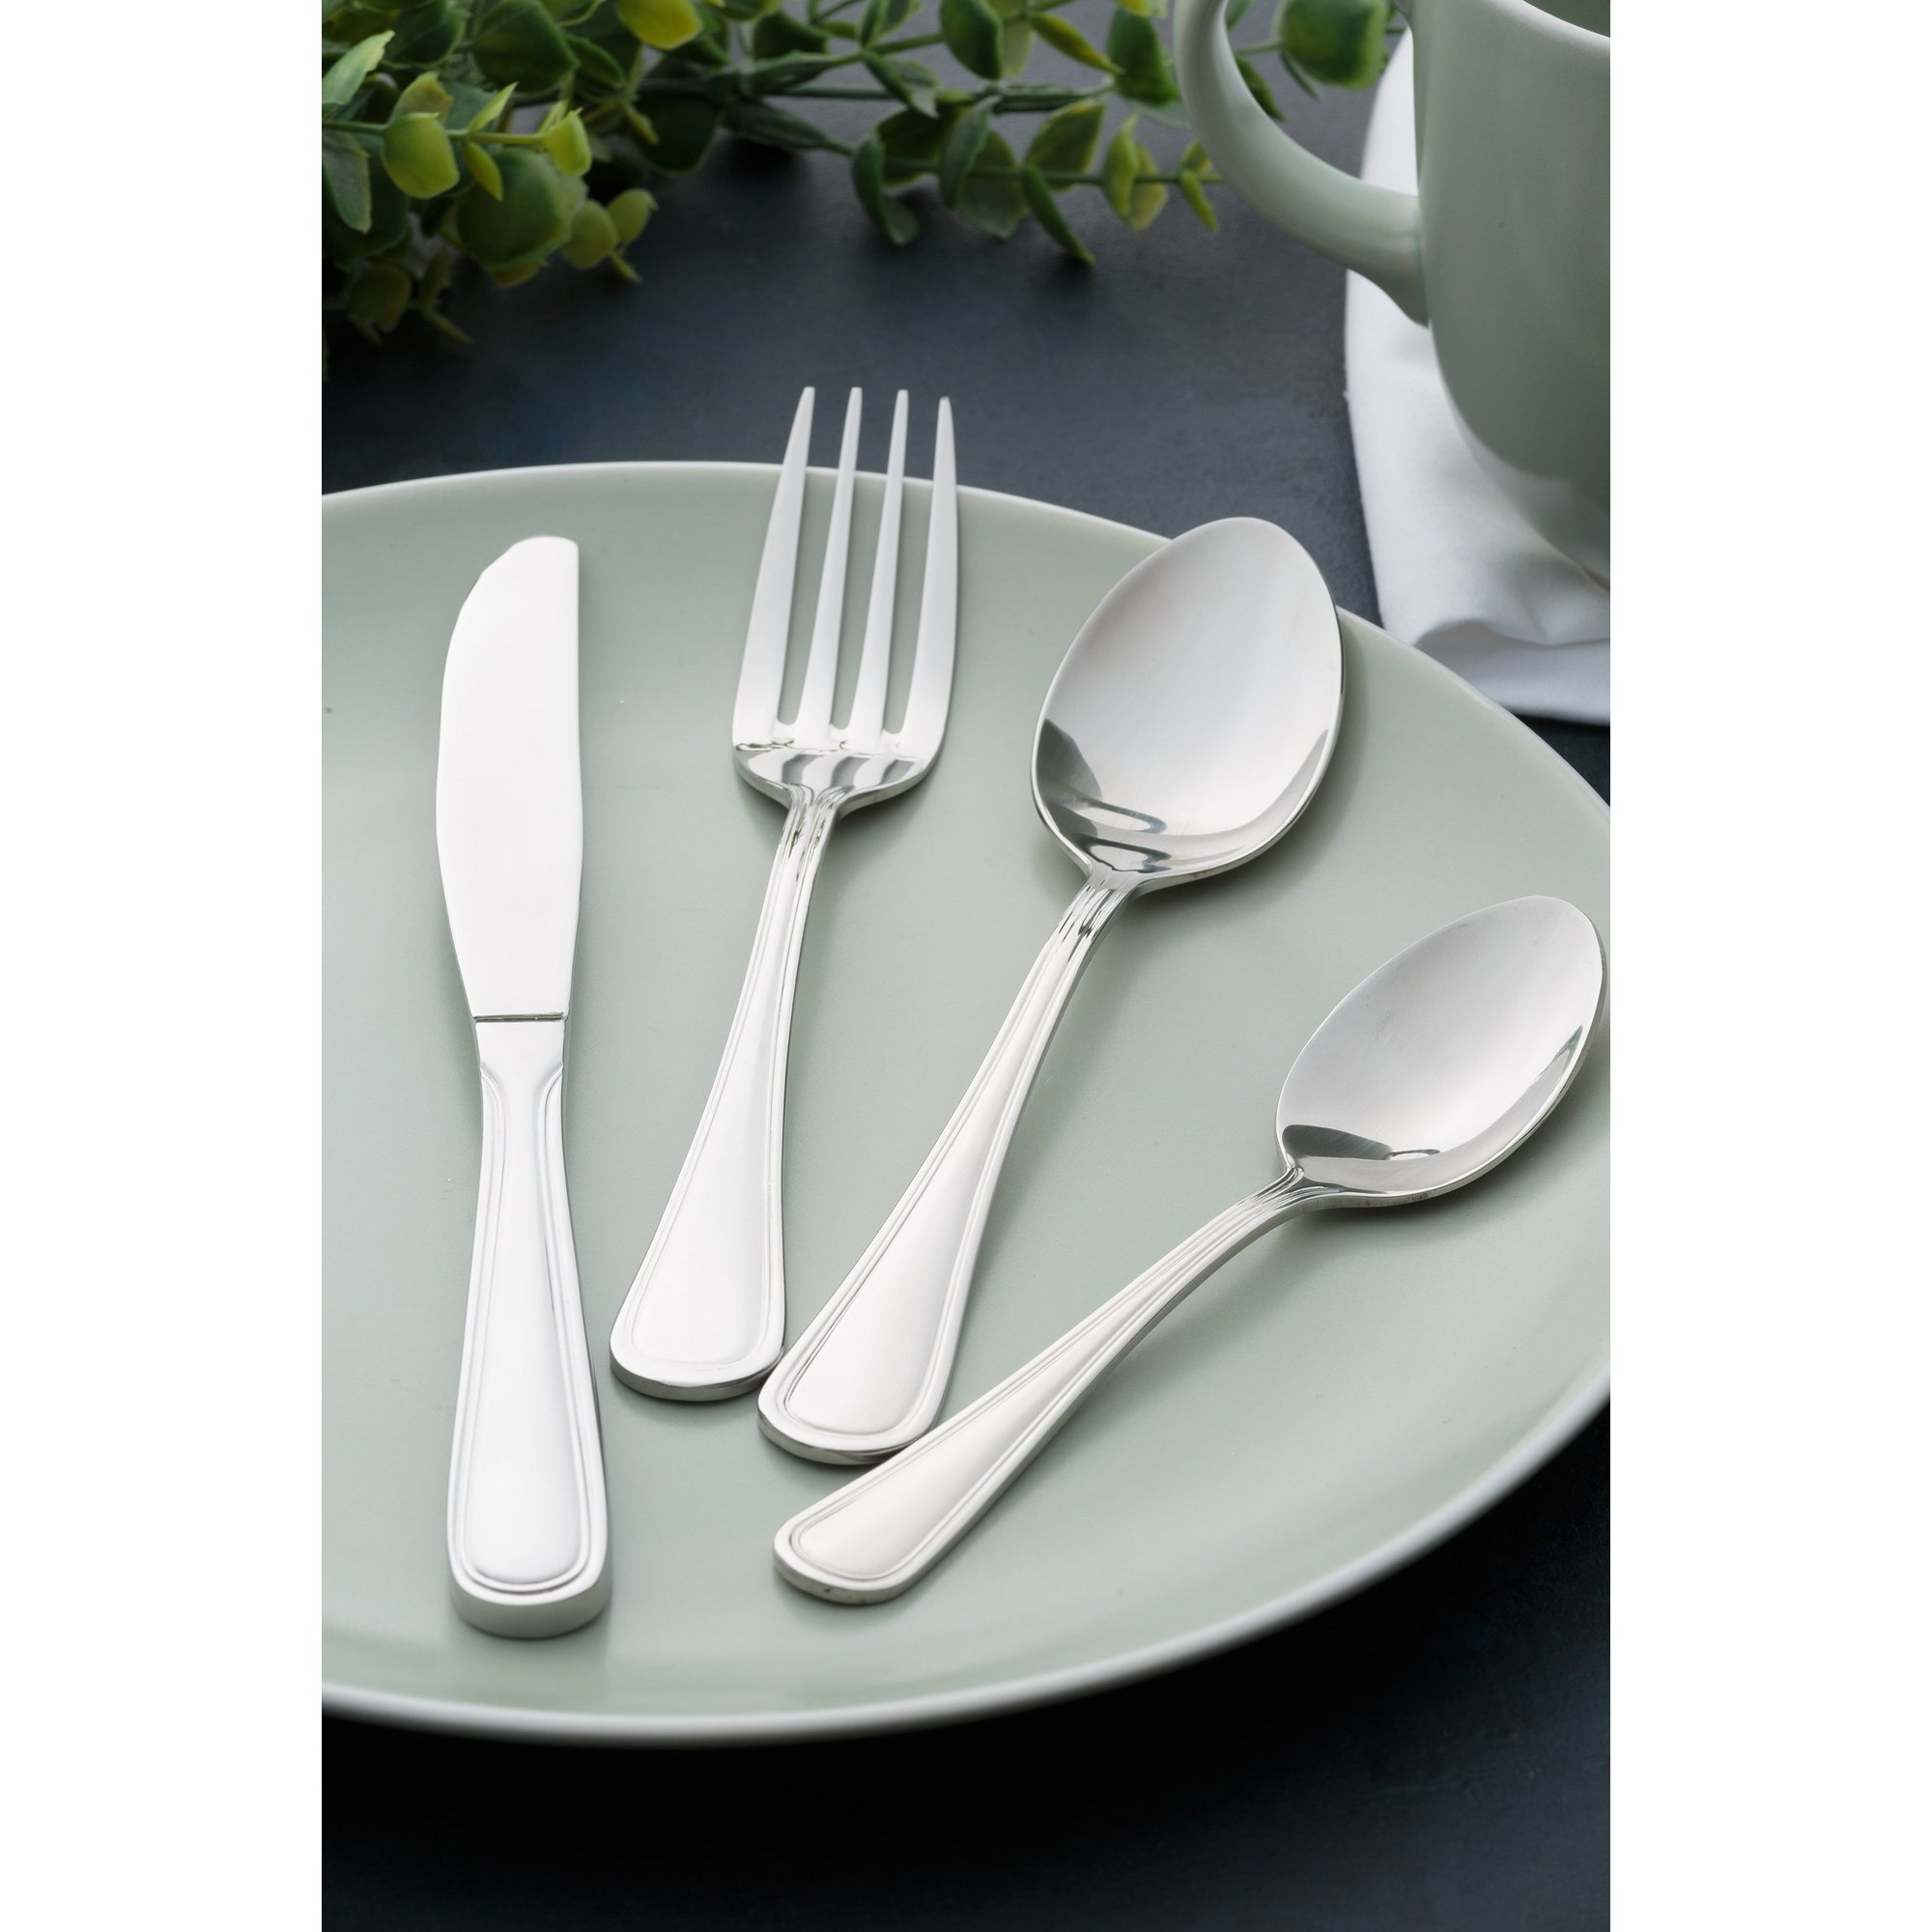 Image of Grand 16 Piece Cutlery Set